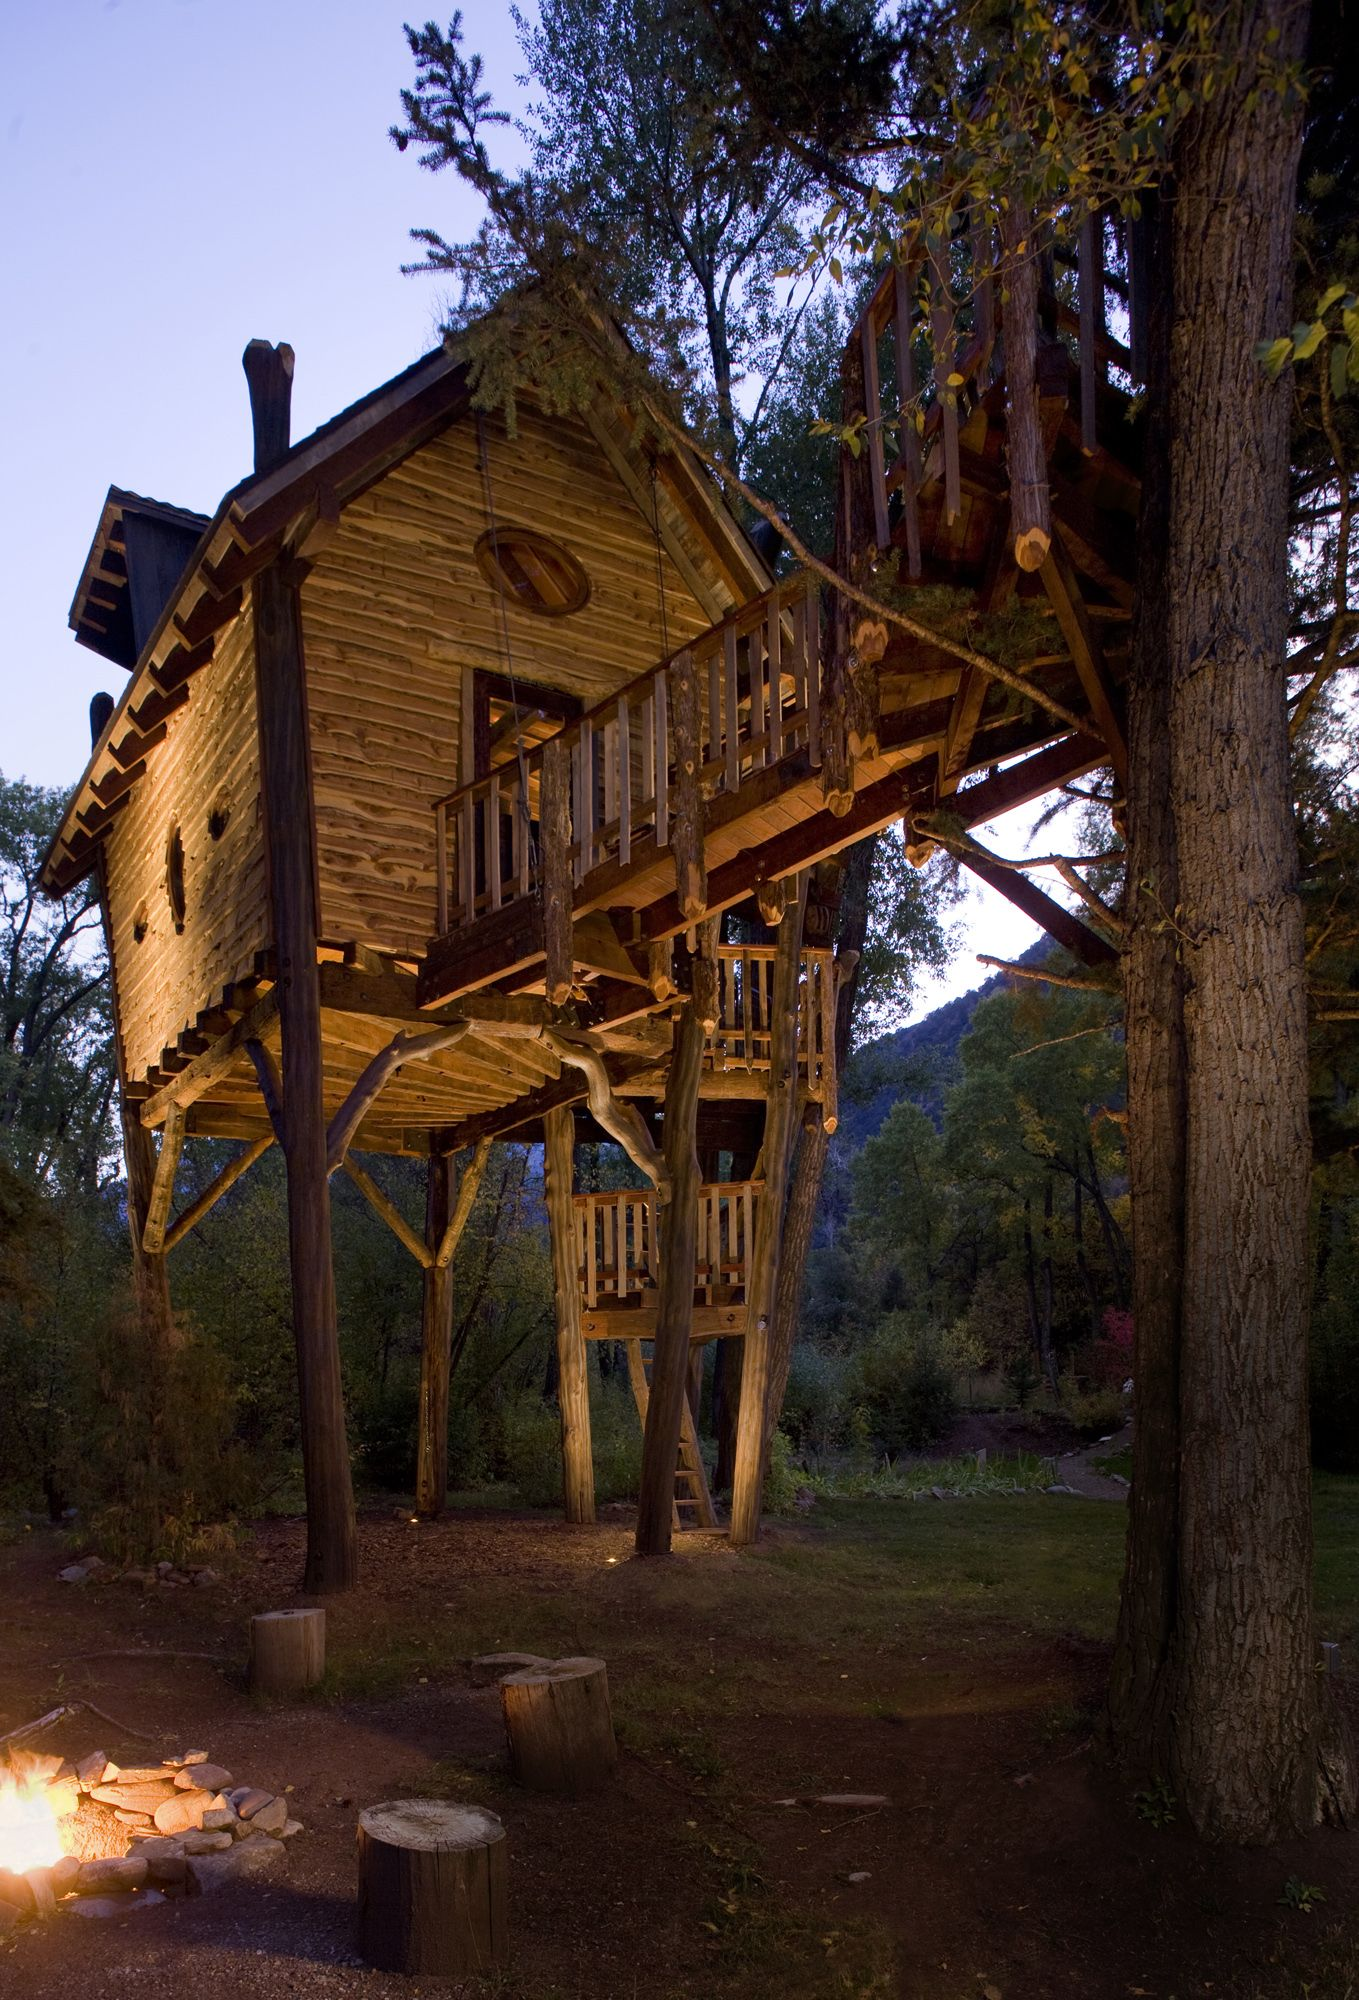 1000+ images about ree houses on Pinterest reehouse hotel ... - ^